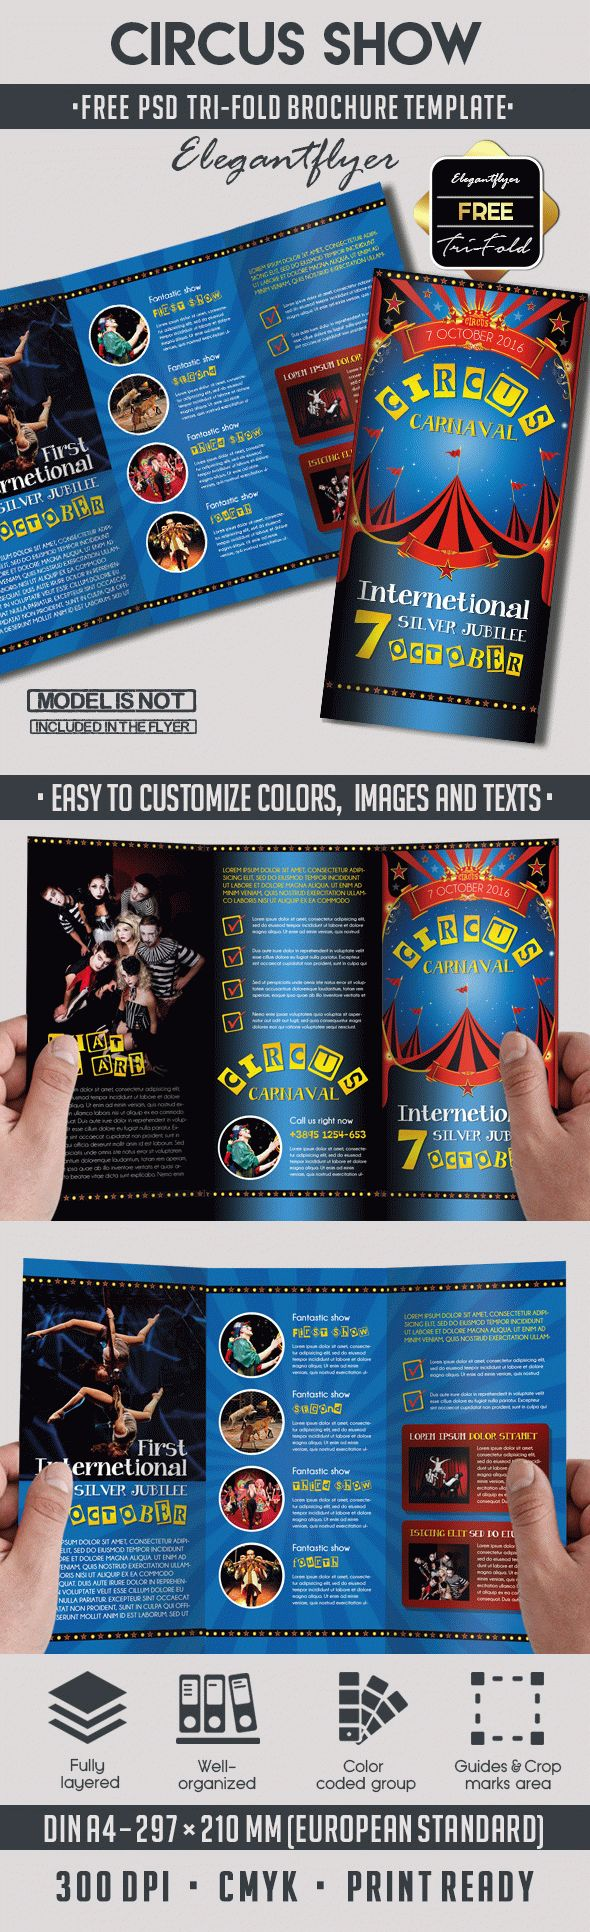 Circus free psd tri fold psd brochure template by for Tri fold brochure template psd